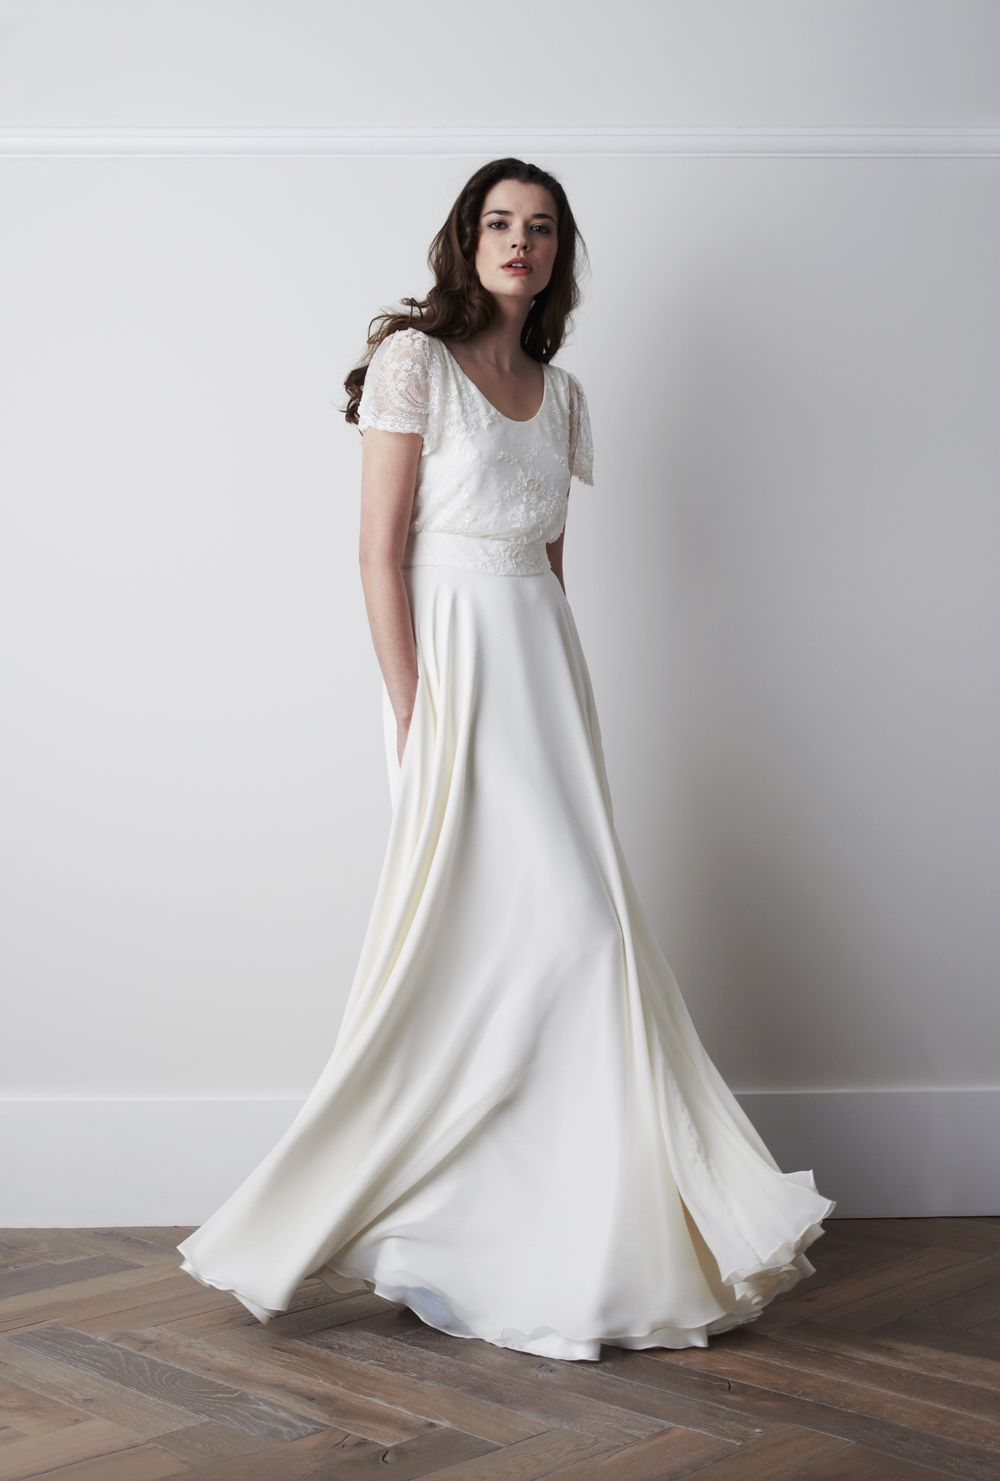 This is another example of dress styling. Just something elegant ...